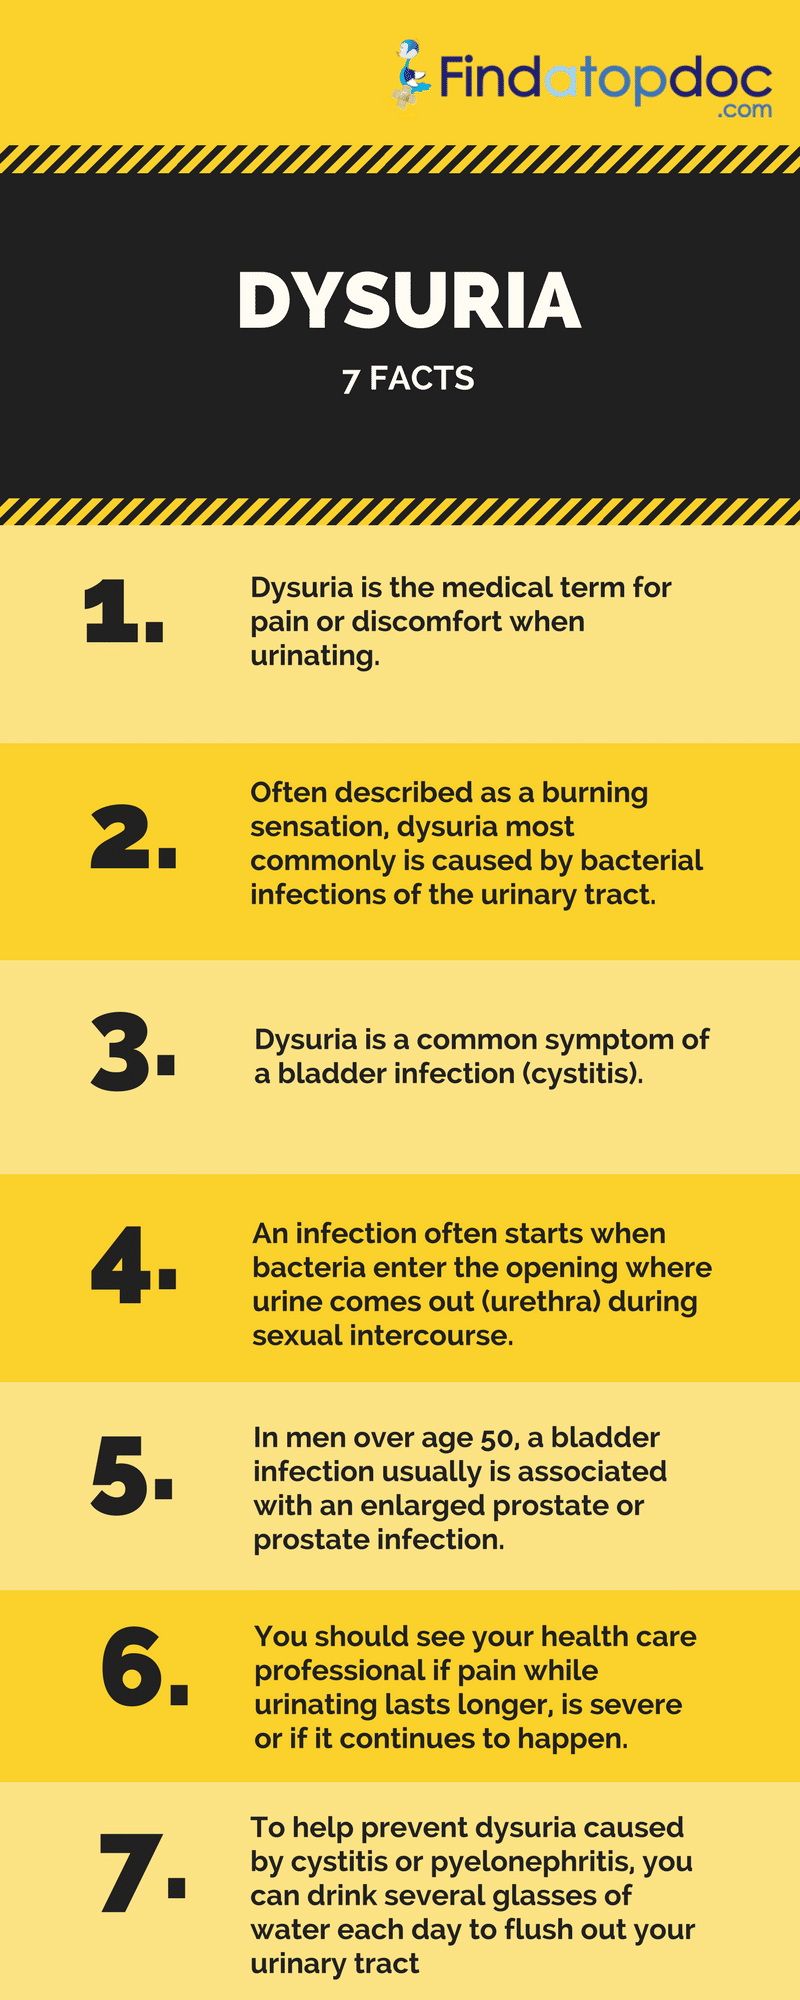 Facts about Dysuria